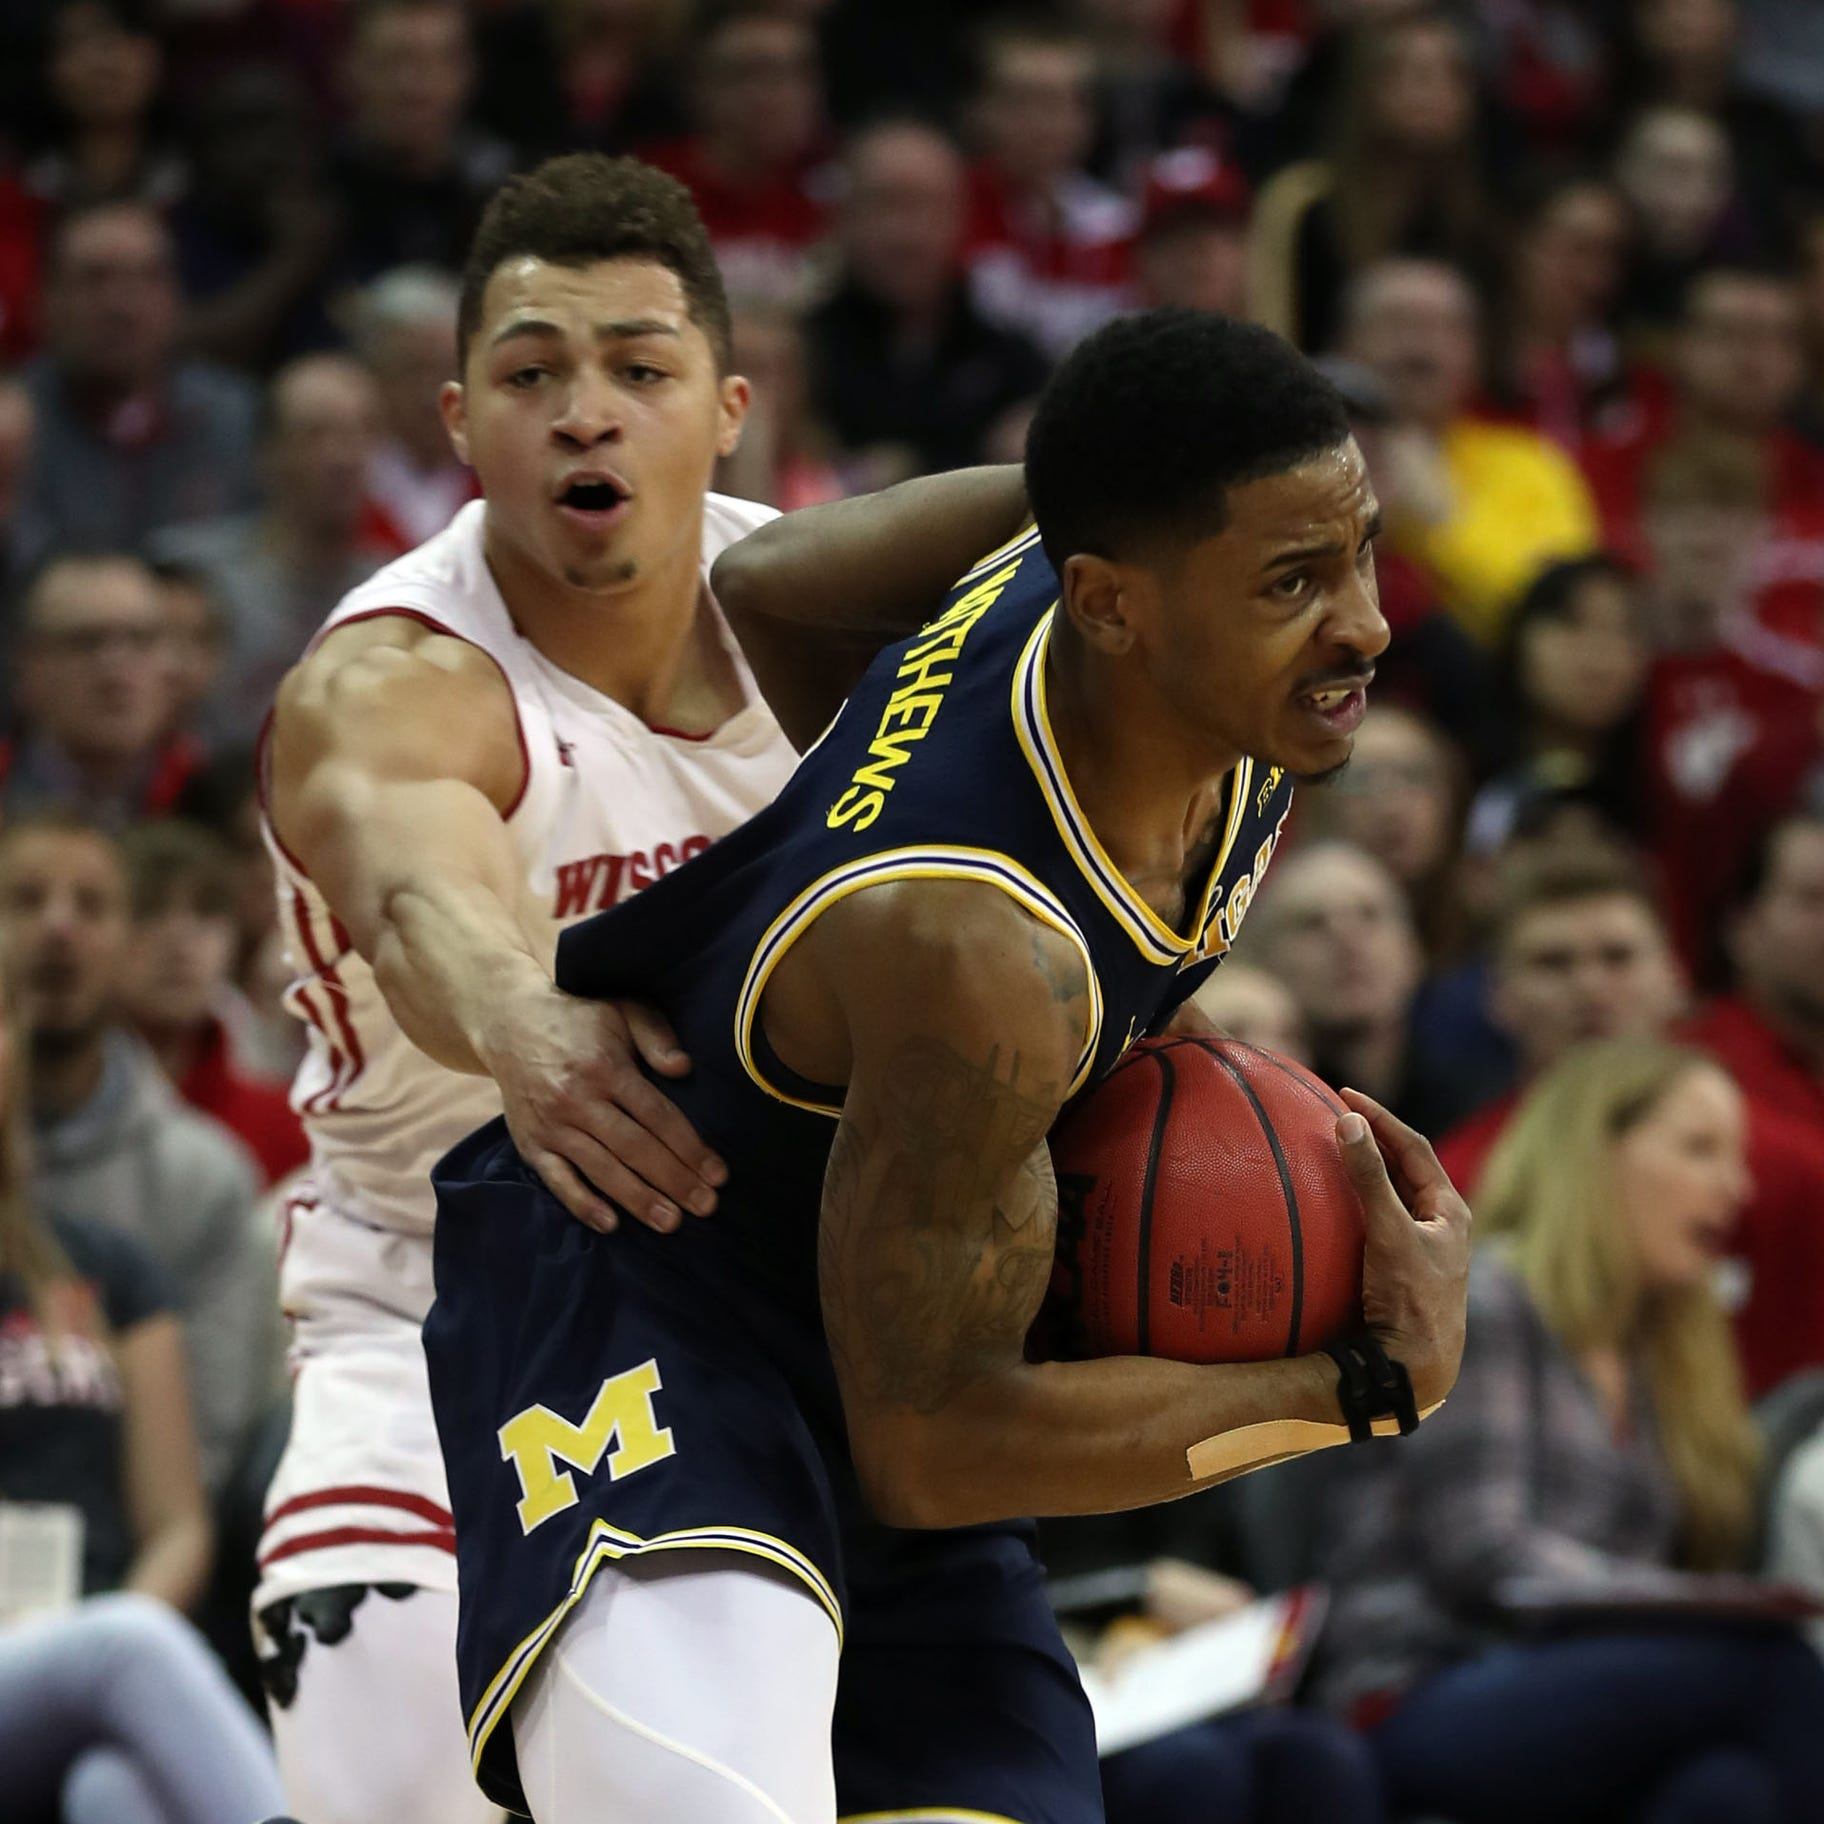 Michigan basketball's learning curve begins with Brazdeikis, Matthews